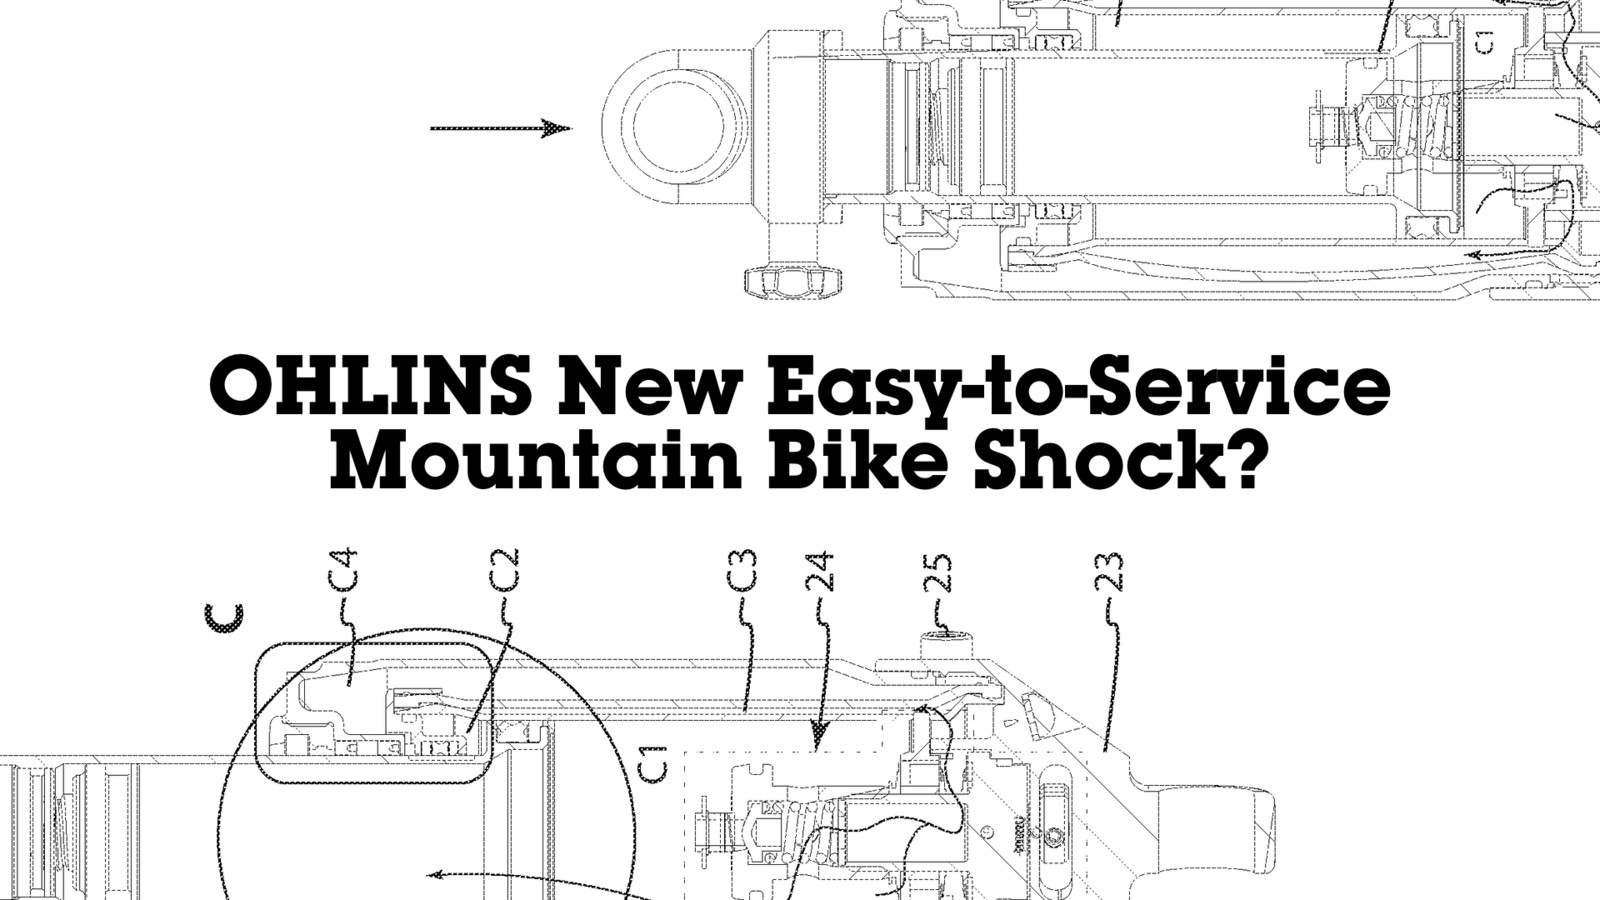 Ohlins New Easy-to-Service Mountain Bike Shock?